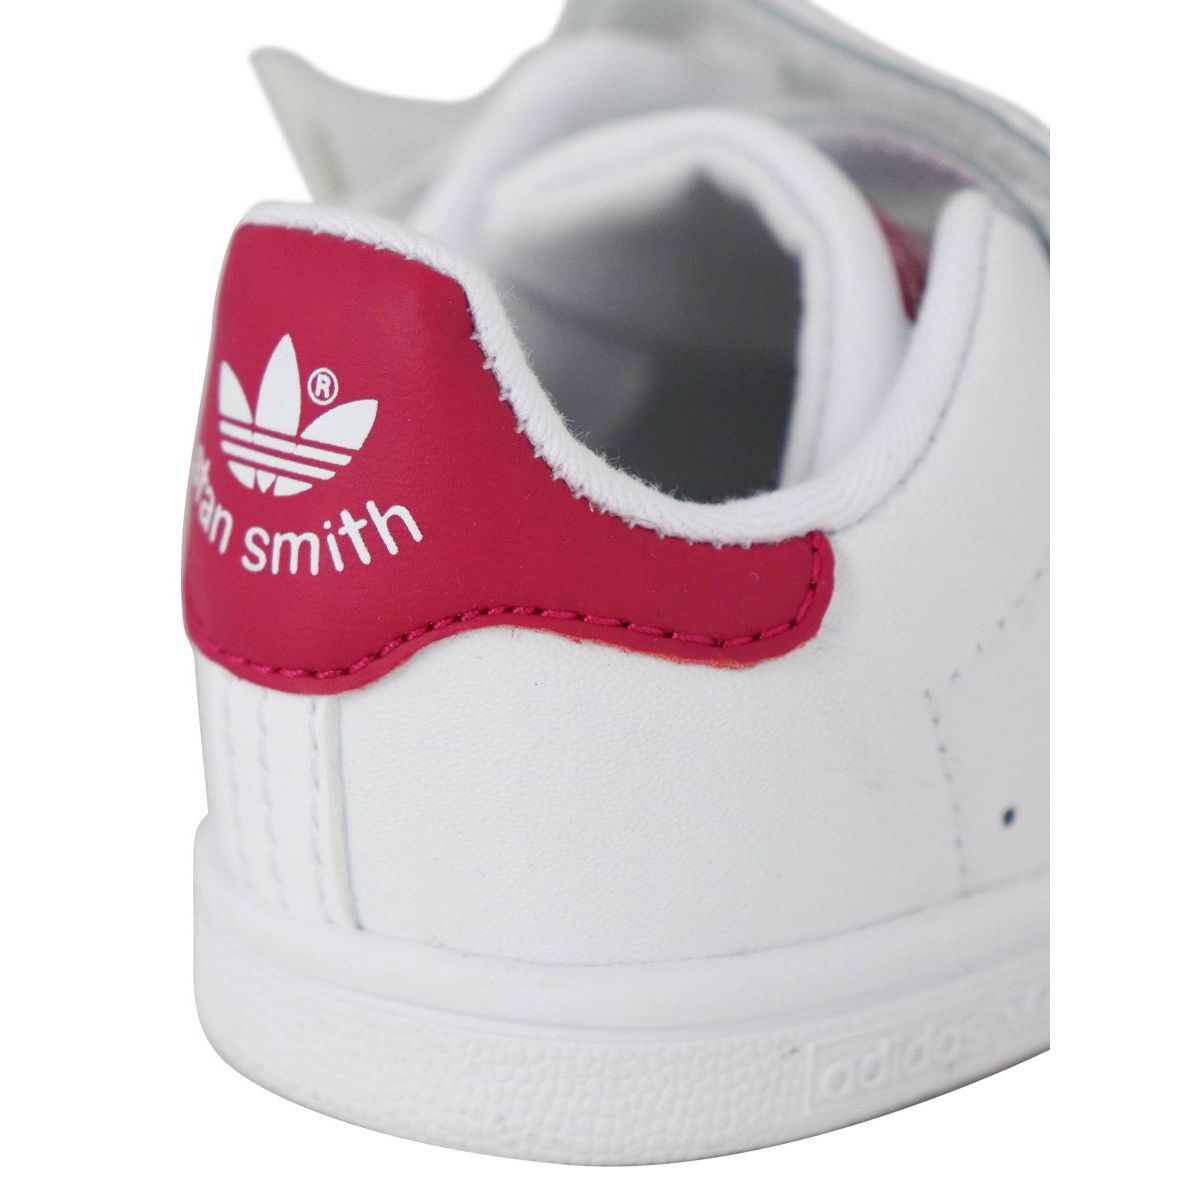 Sneakers BZ0523 STAN SMITH White / fuchsia Adidas